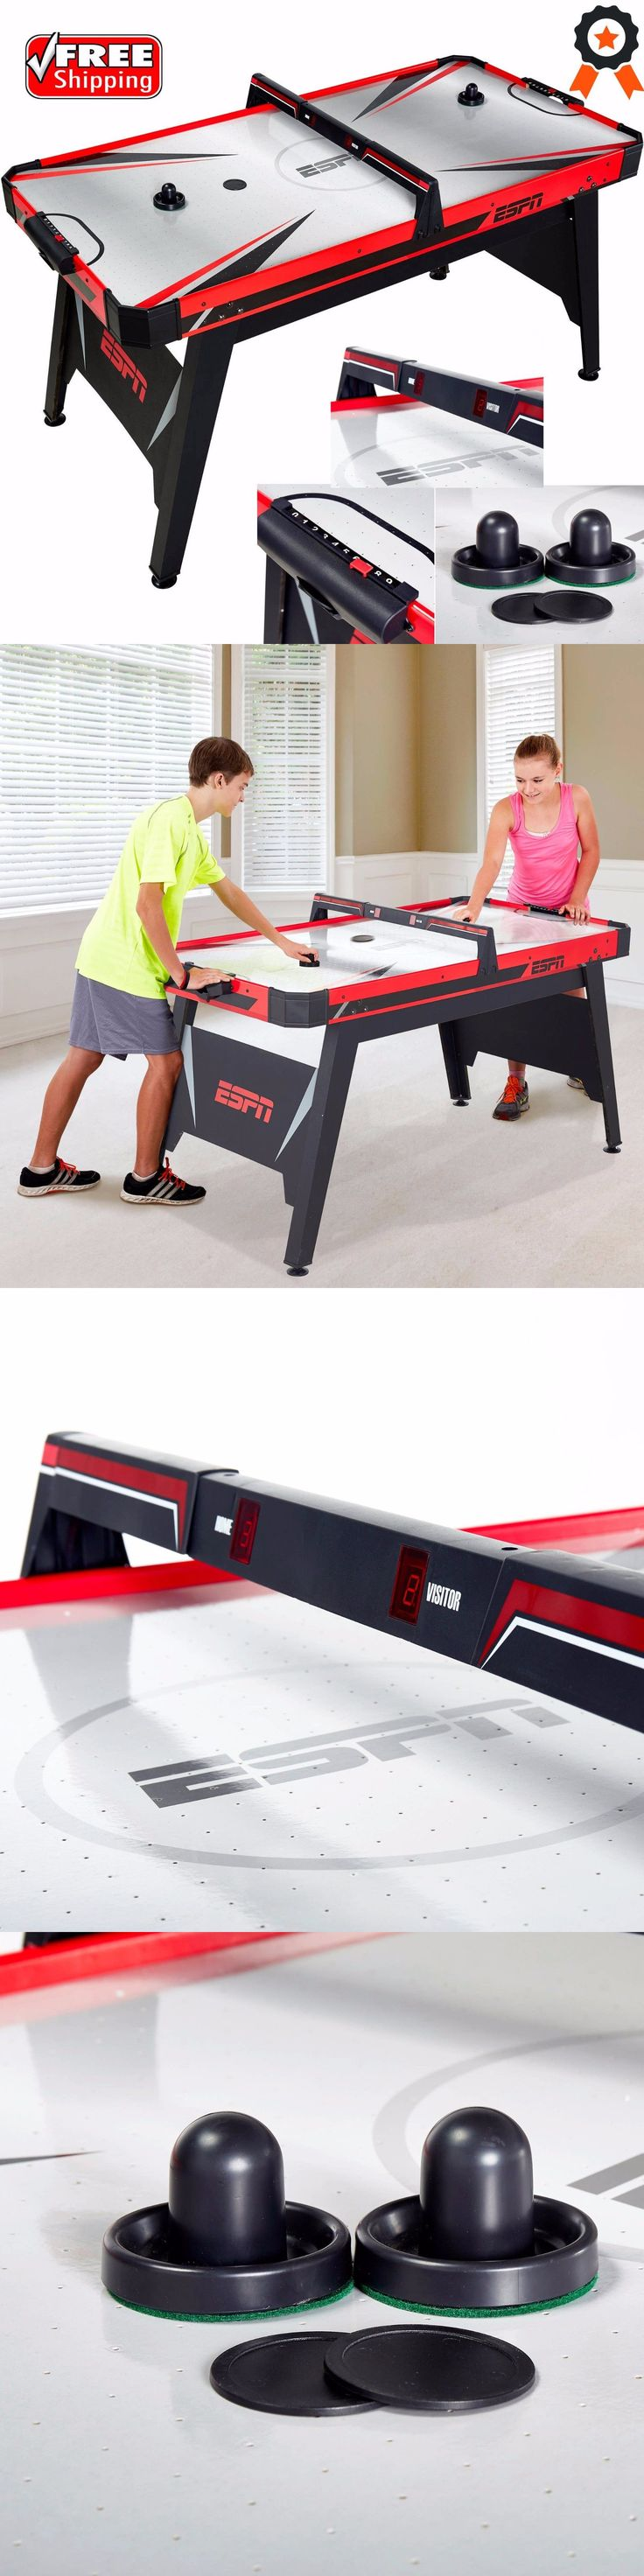 Air Hockey 36275: Espn 60 Air Hockey Table Powered 2 Pucks Pushers Game Sleek Red Puck Top Led BUY IT NOW ONLY: $305.64